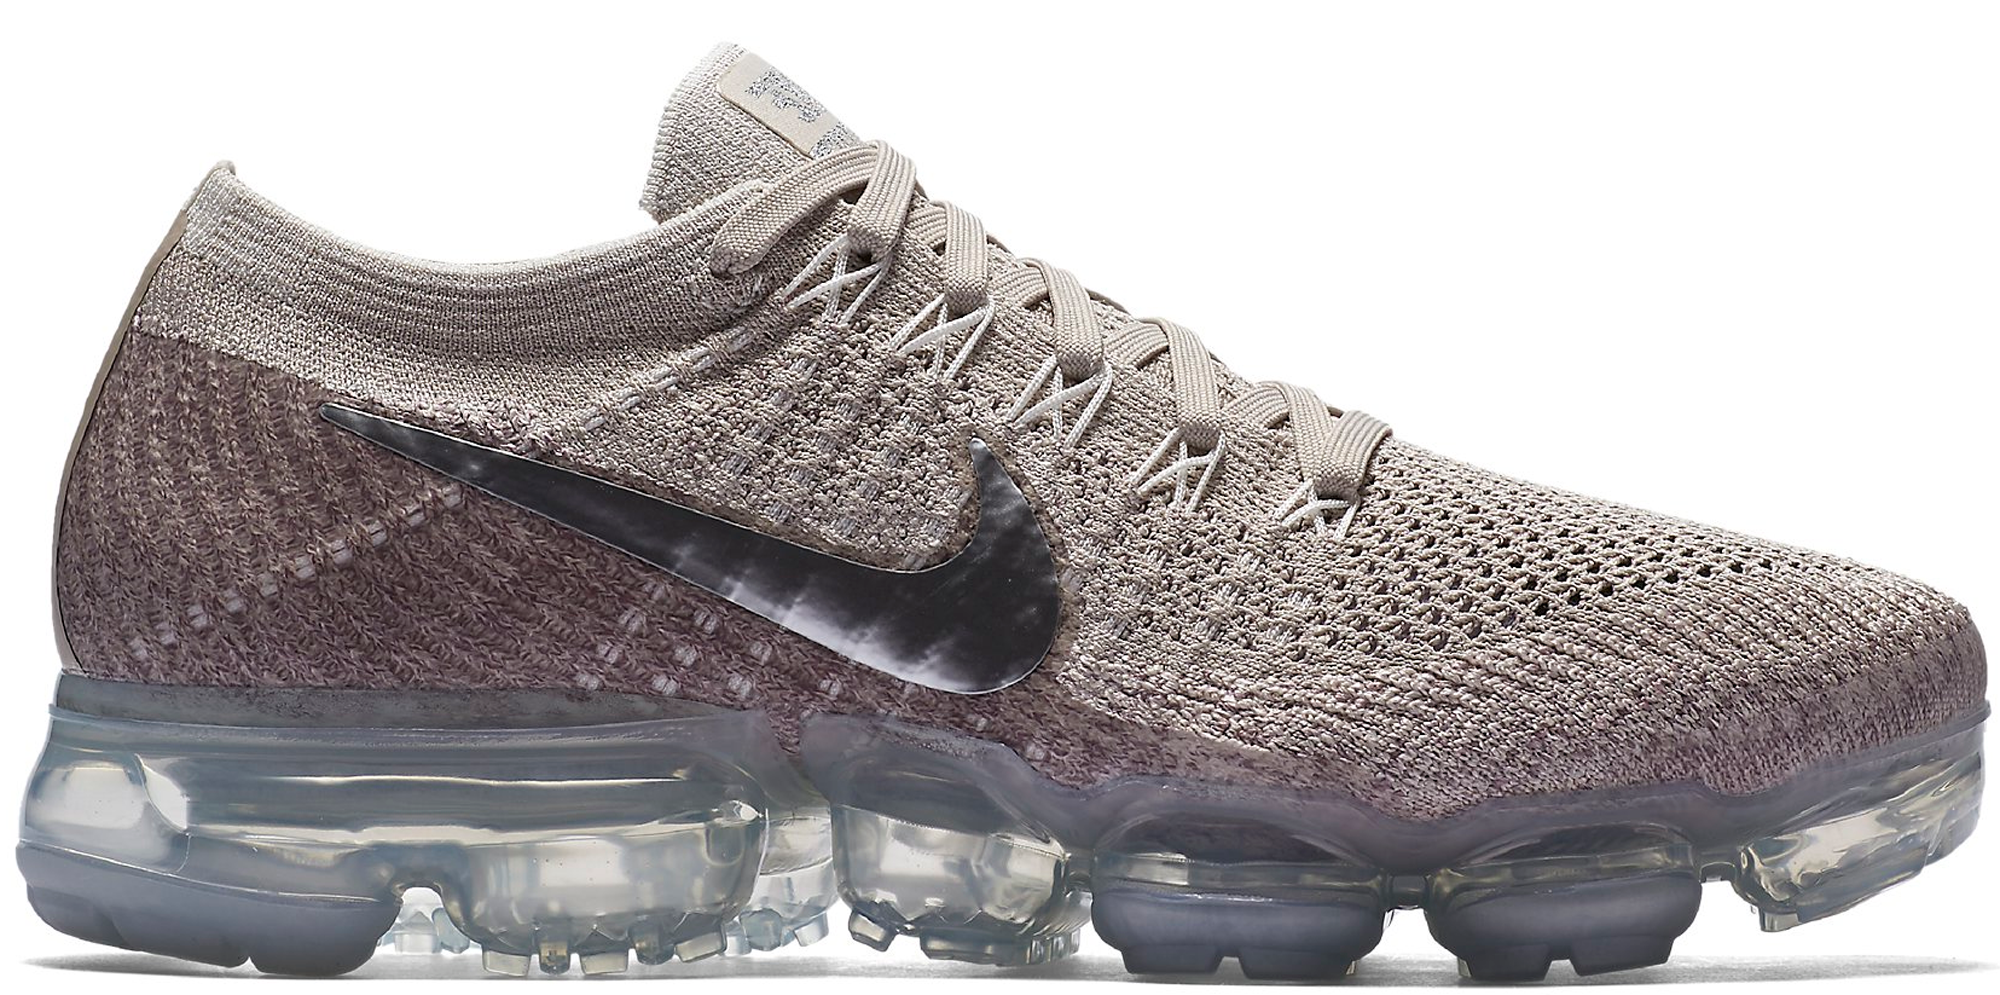 official photos 9ed40 8bf72 Women's Nike Air VaporMax String - StockX News